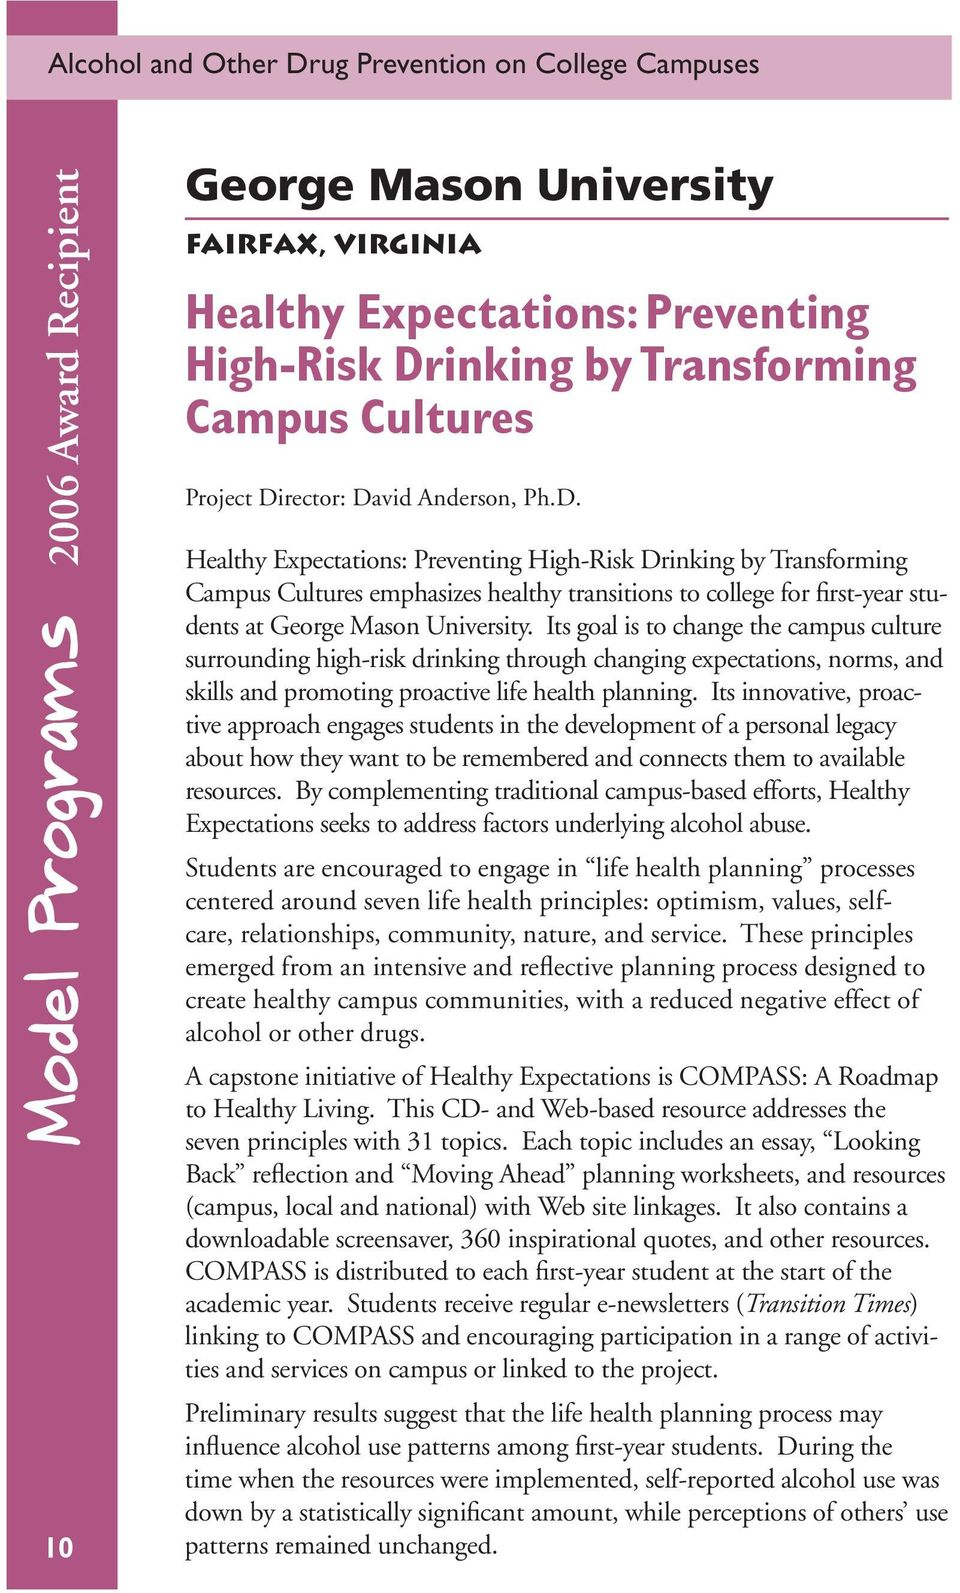 Its goal is to change the campus culture surrounding high-risk drinking through changing expectations, norms, and skills and promoting proactive life health planning.